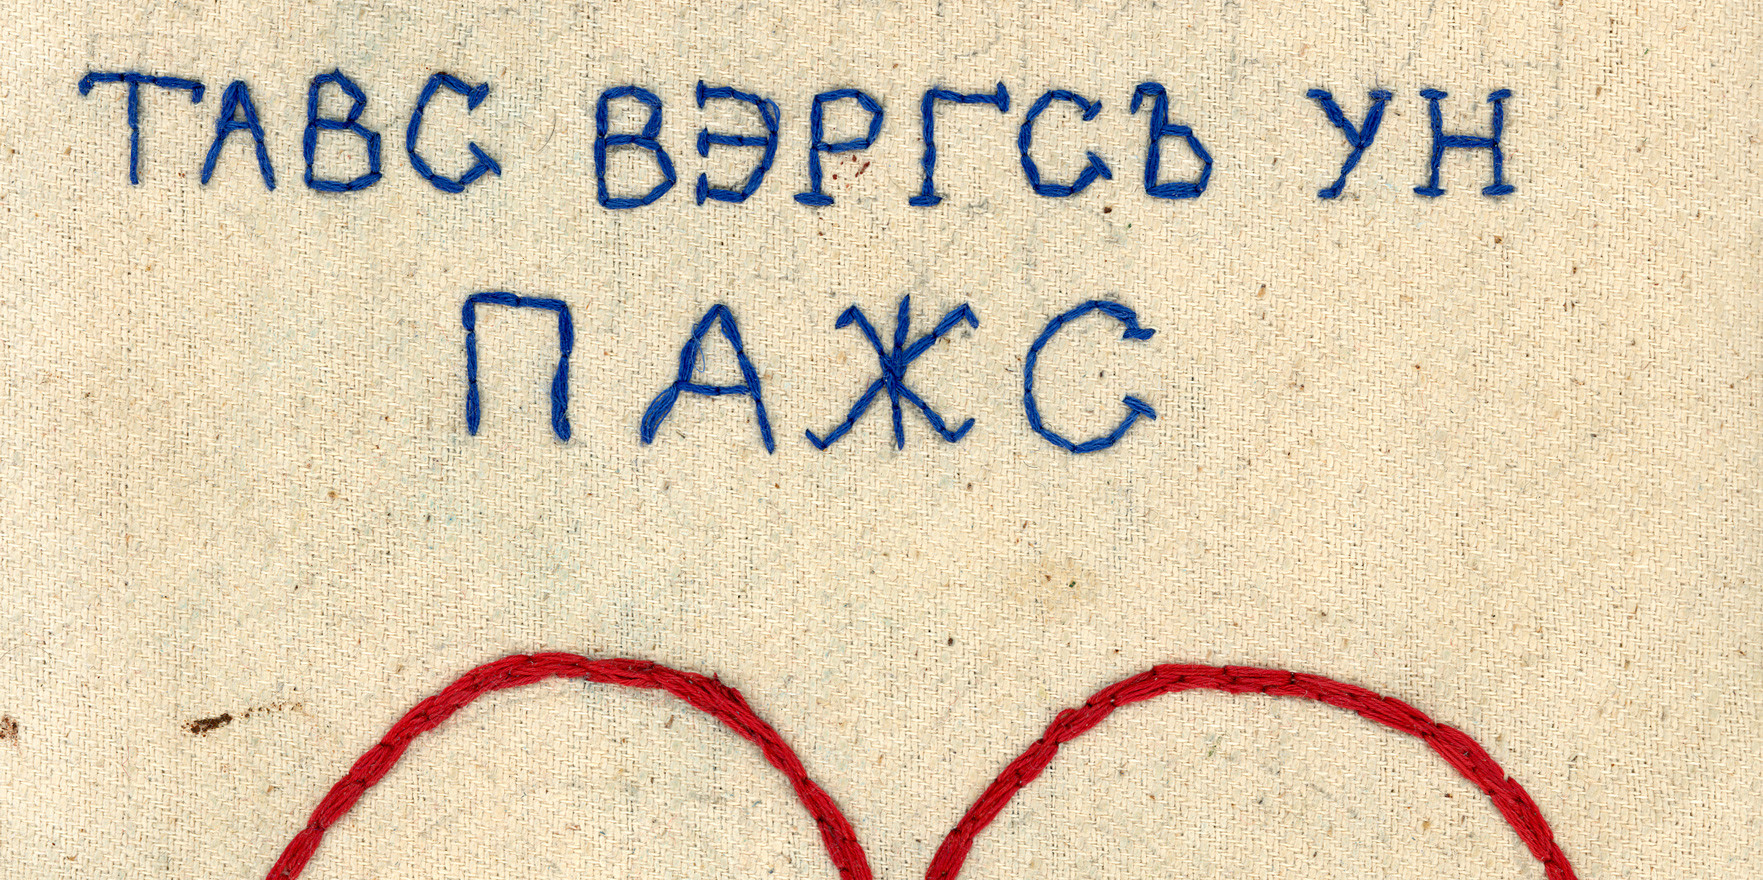 TAVS VERGS UN PĀŽS  Embroidery attributed to St. Petersburg period  (circa 1916). Text is a sentence in Latvian that is transcribed in Cyrillic alphabet.